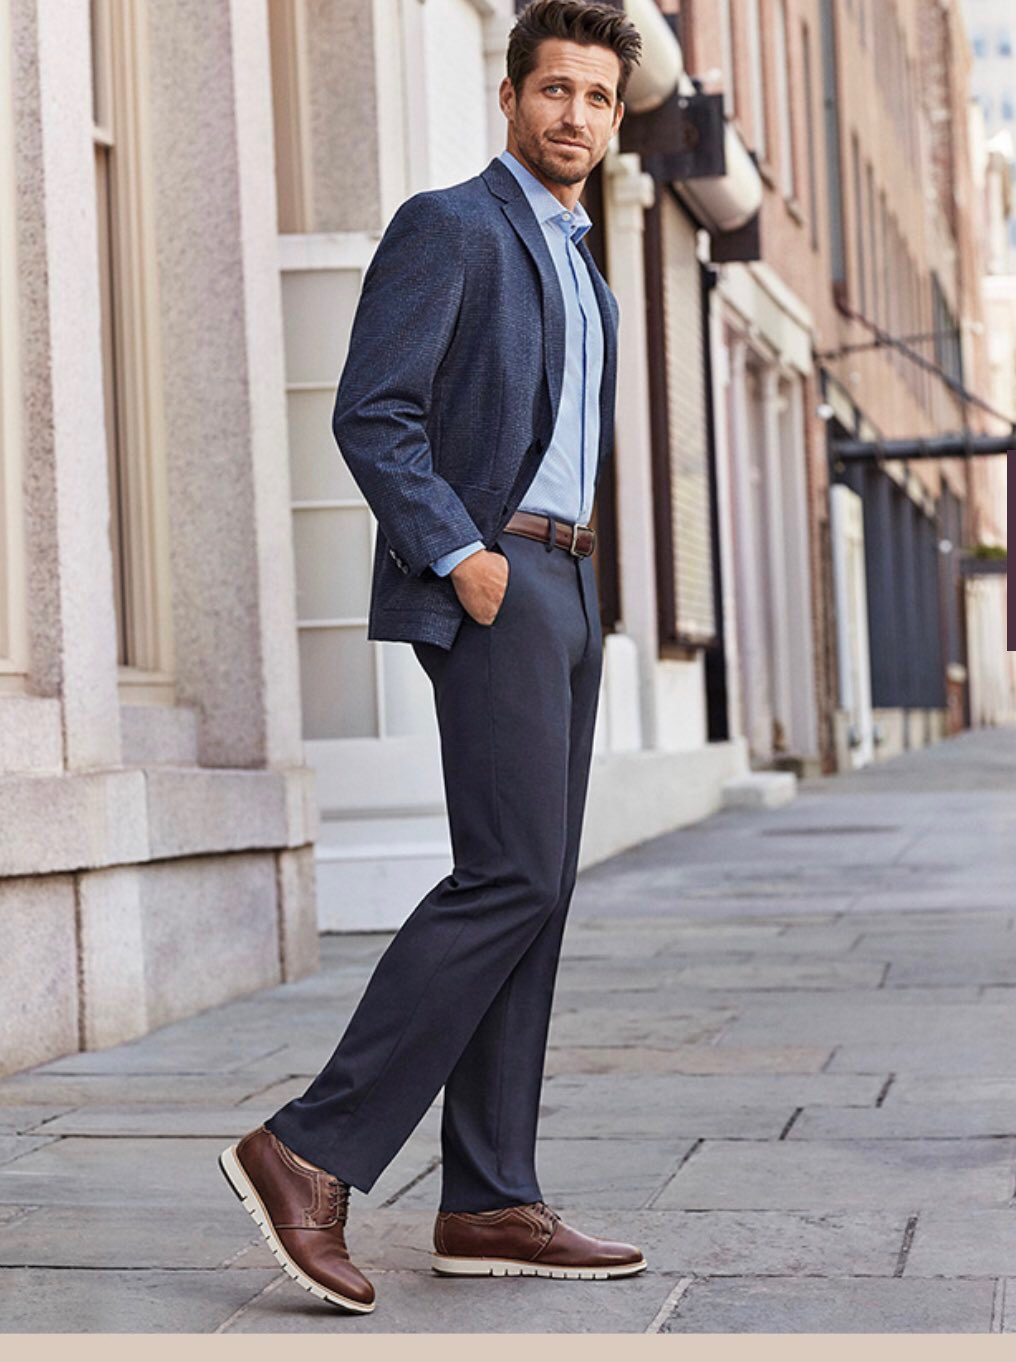 Man wearing navy suit with gray pants & loafers